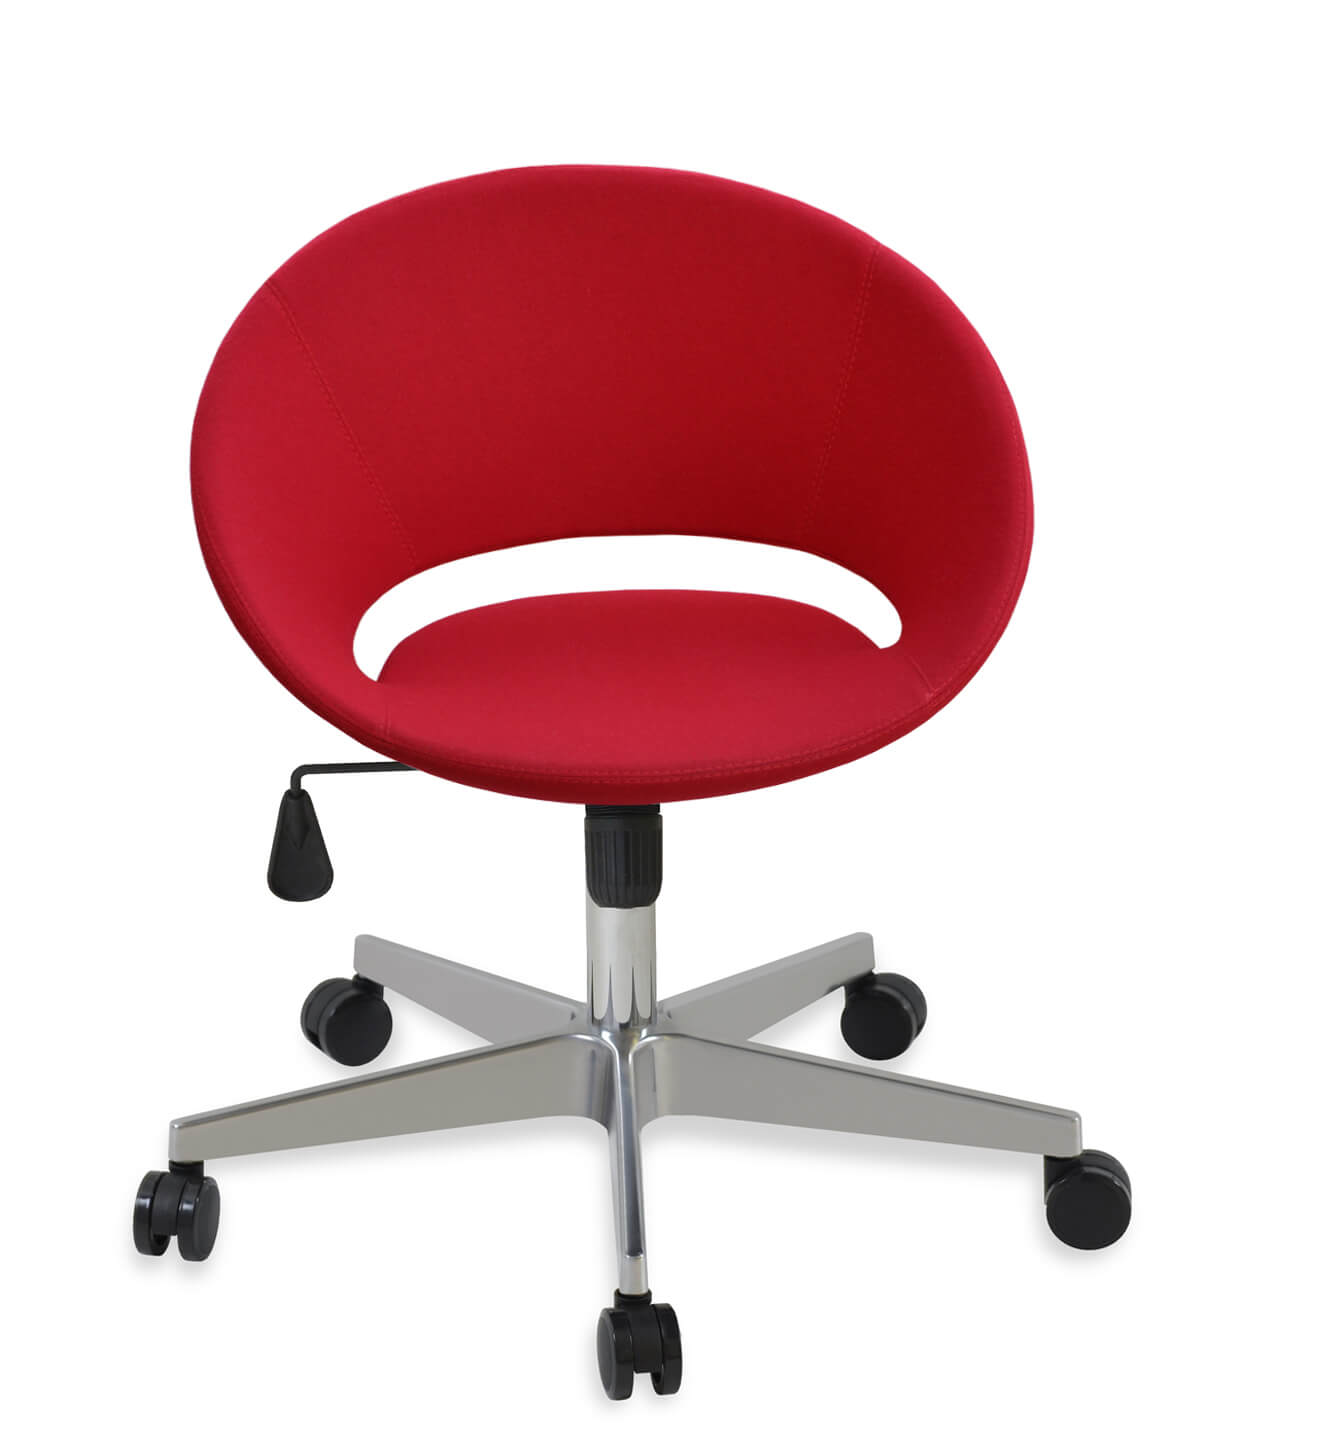 red velvet office chair casters walmart crescent base a2 gold by sohoconcept